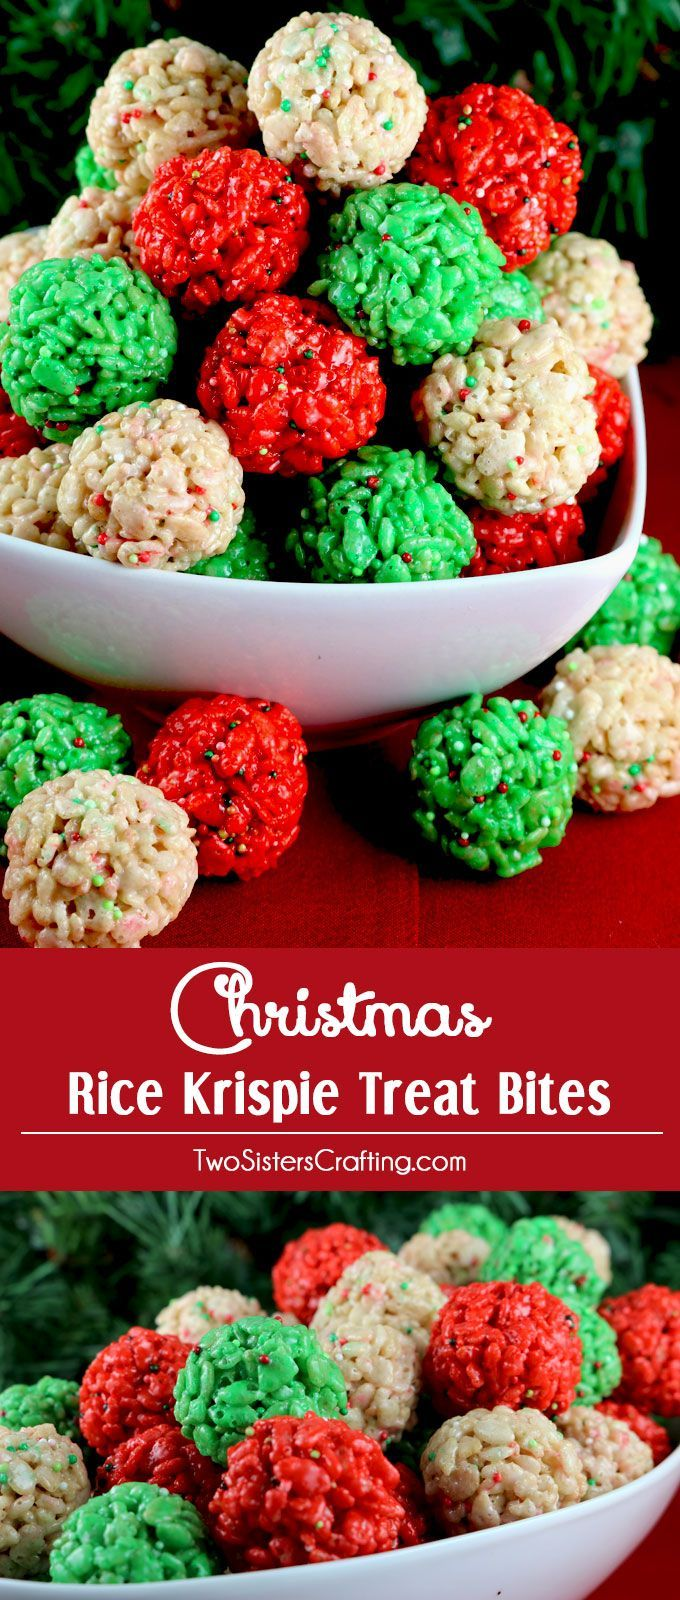 Rice Crispy Treat Christmas.Christmas Rice Krispie Treat Bites